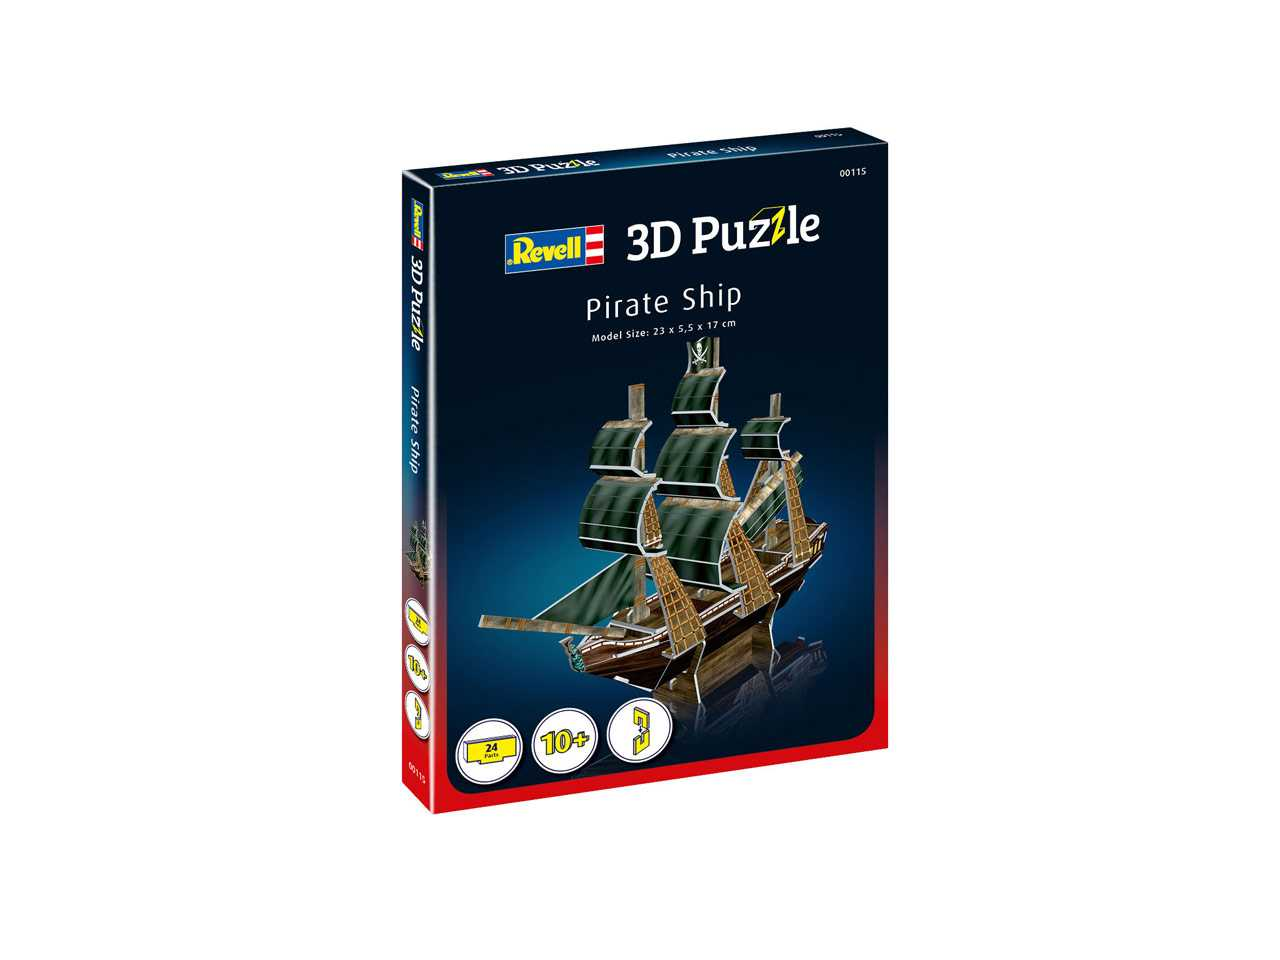 3D Puzzle REVELL 00115 - Pirate Ship